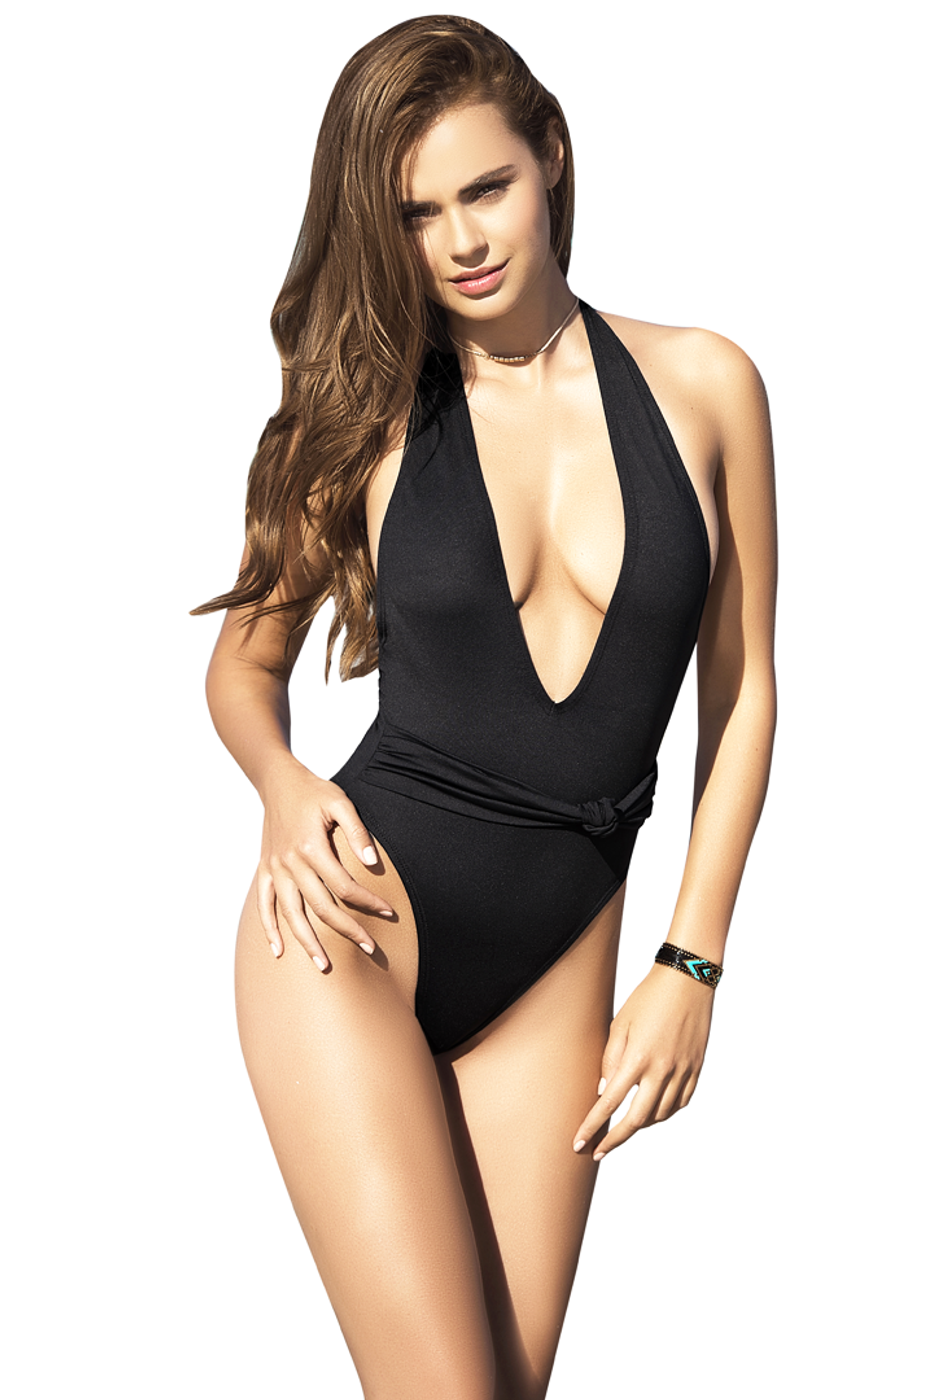 725930b1e0b Shop this women's black monokini with low scoop neckline and high cut  cheeky back